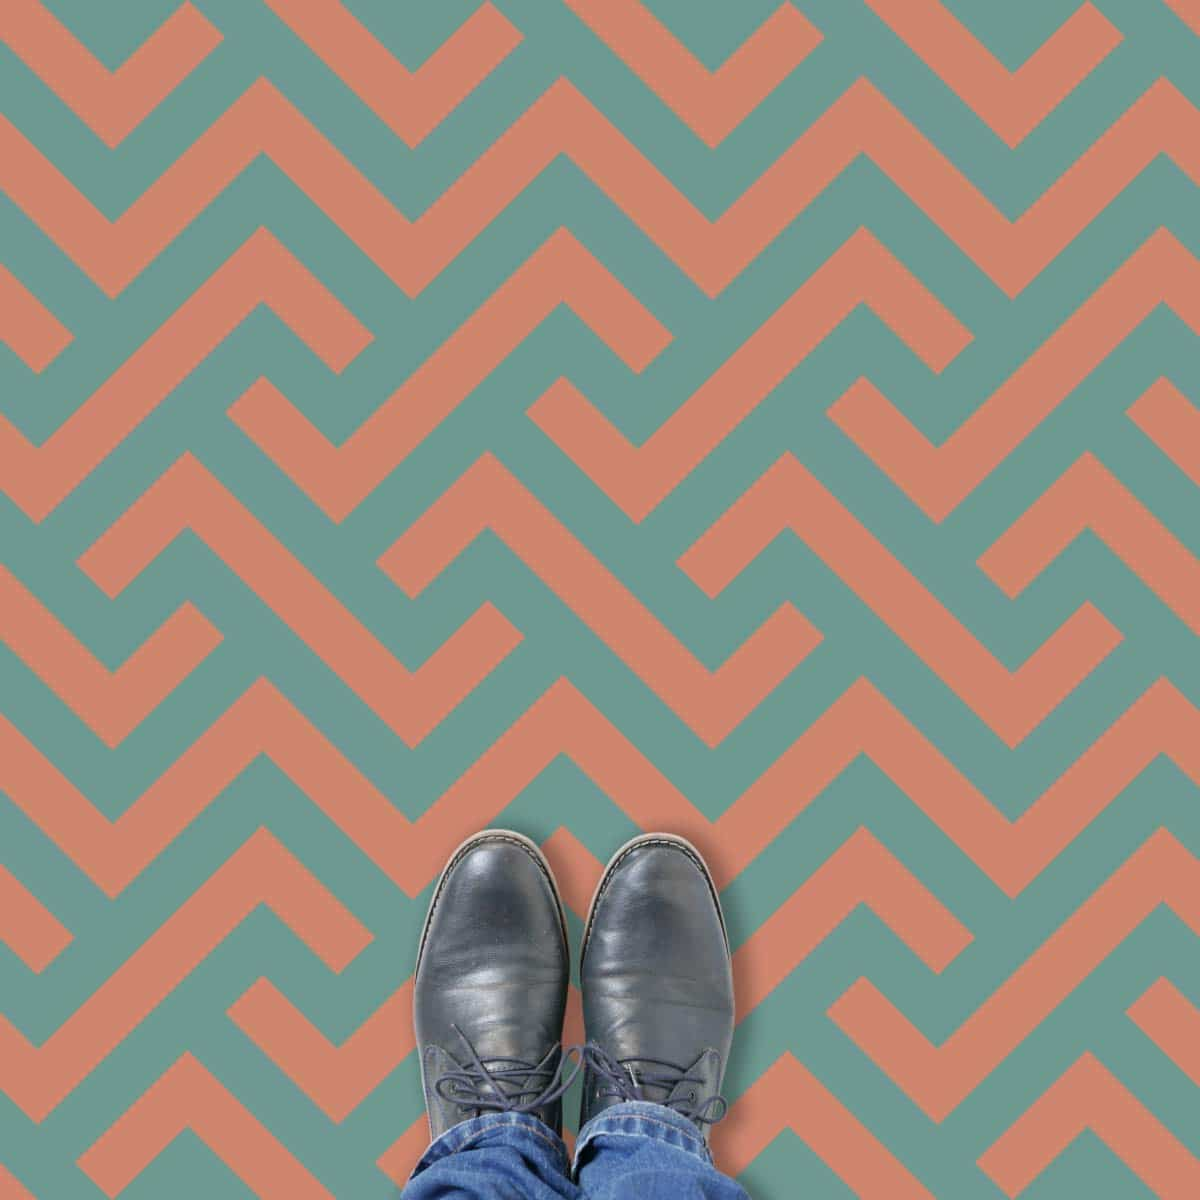 Vestra Two tone parquet style pattern printed geometric design vinyl flooring exclusively from forthefloorandmore.com